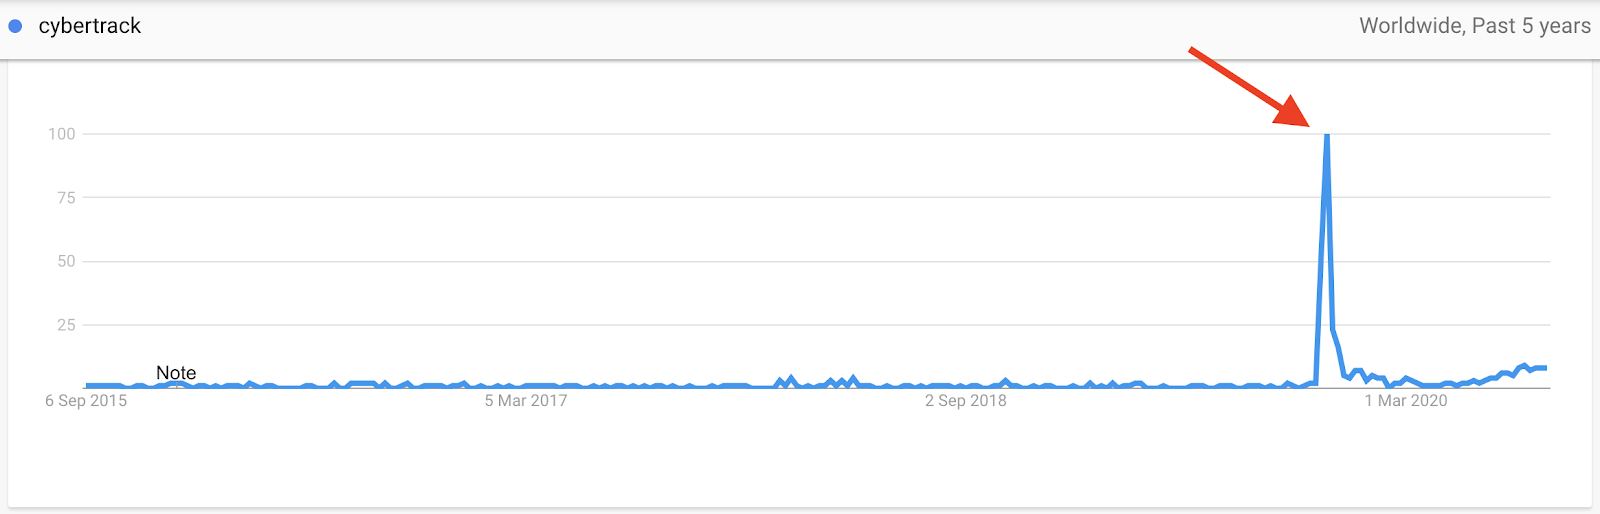 Google Trends Interest for Cybertrack